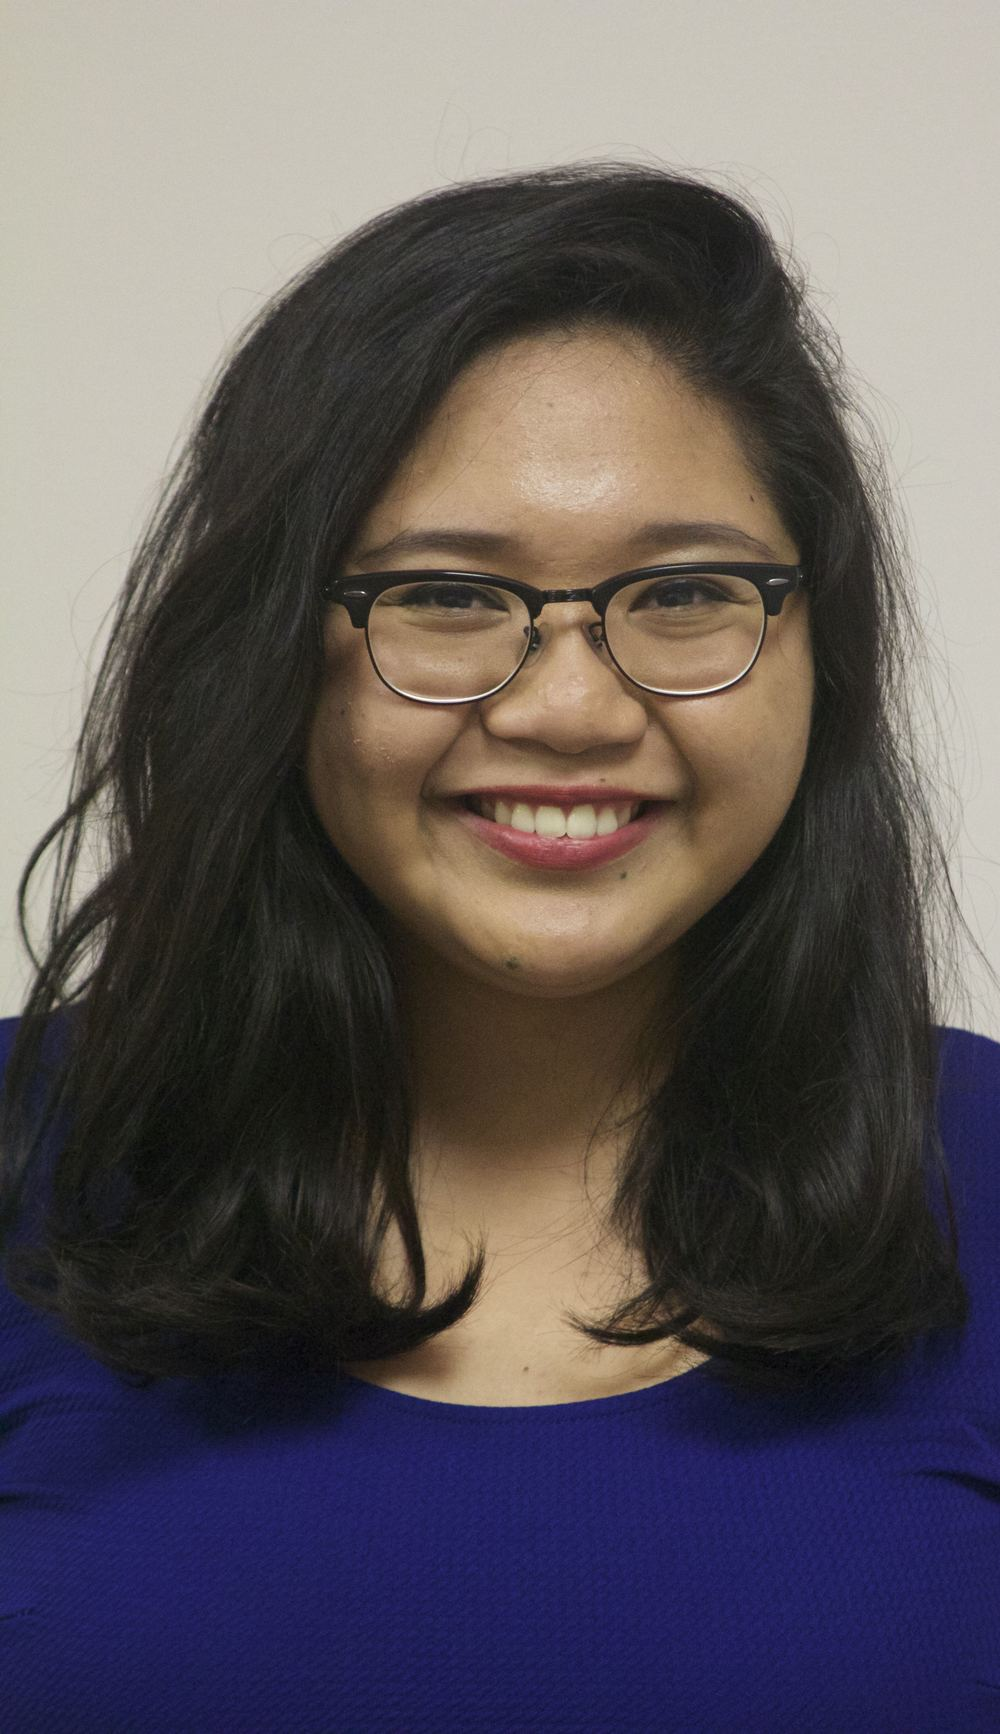 """""""CTL has empowered me both as an individual and as a leader. I have learned the importance of authenticity, empathy, and appreciating various leadership styles as equally valid and powerful."""" April Jingco   CTL Class of 2012   McKinley High School"""